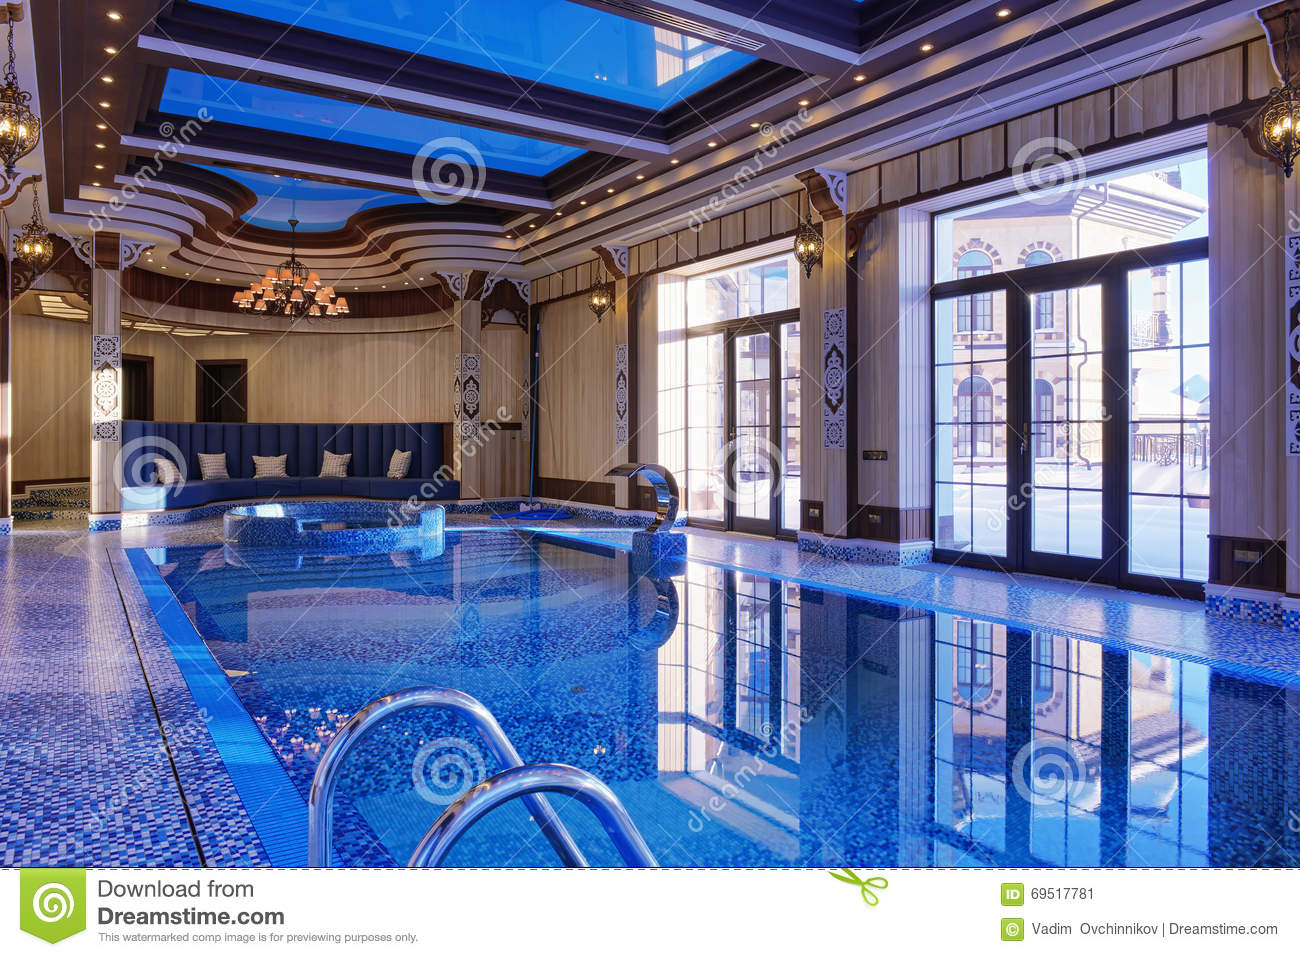 Home Indoor Pool home indoor pool stock photo - image: 69517781